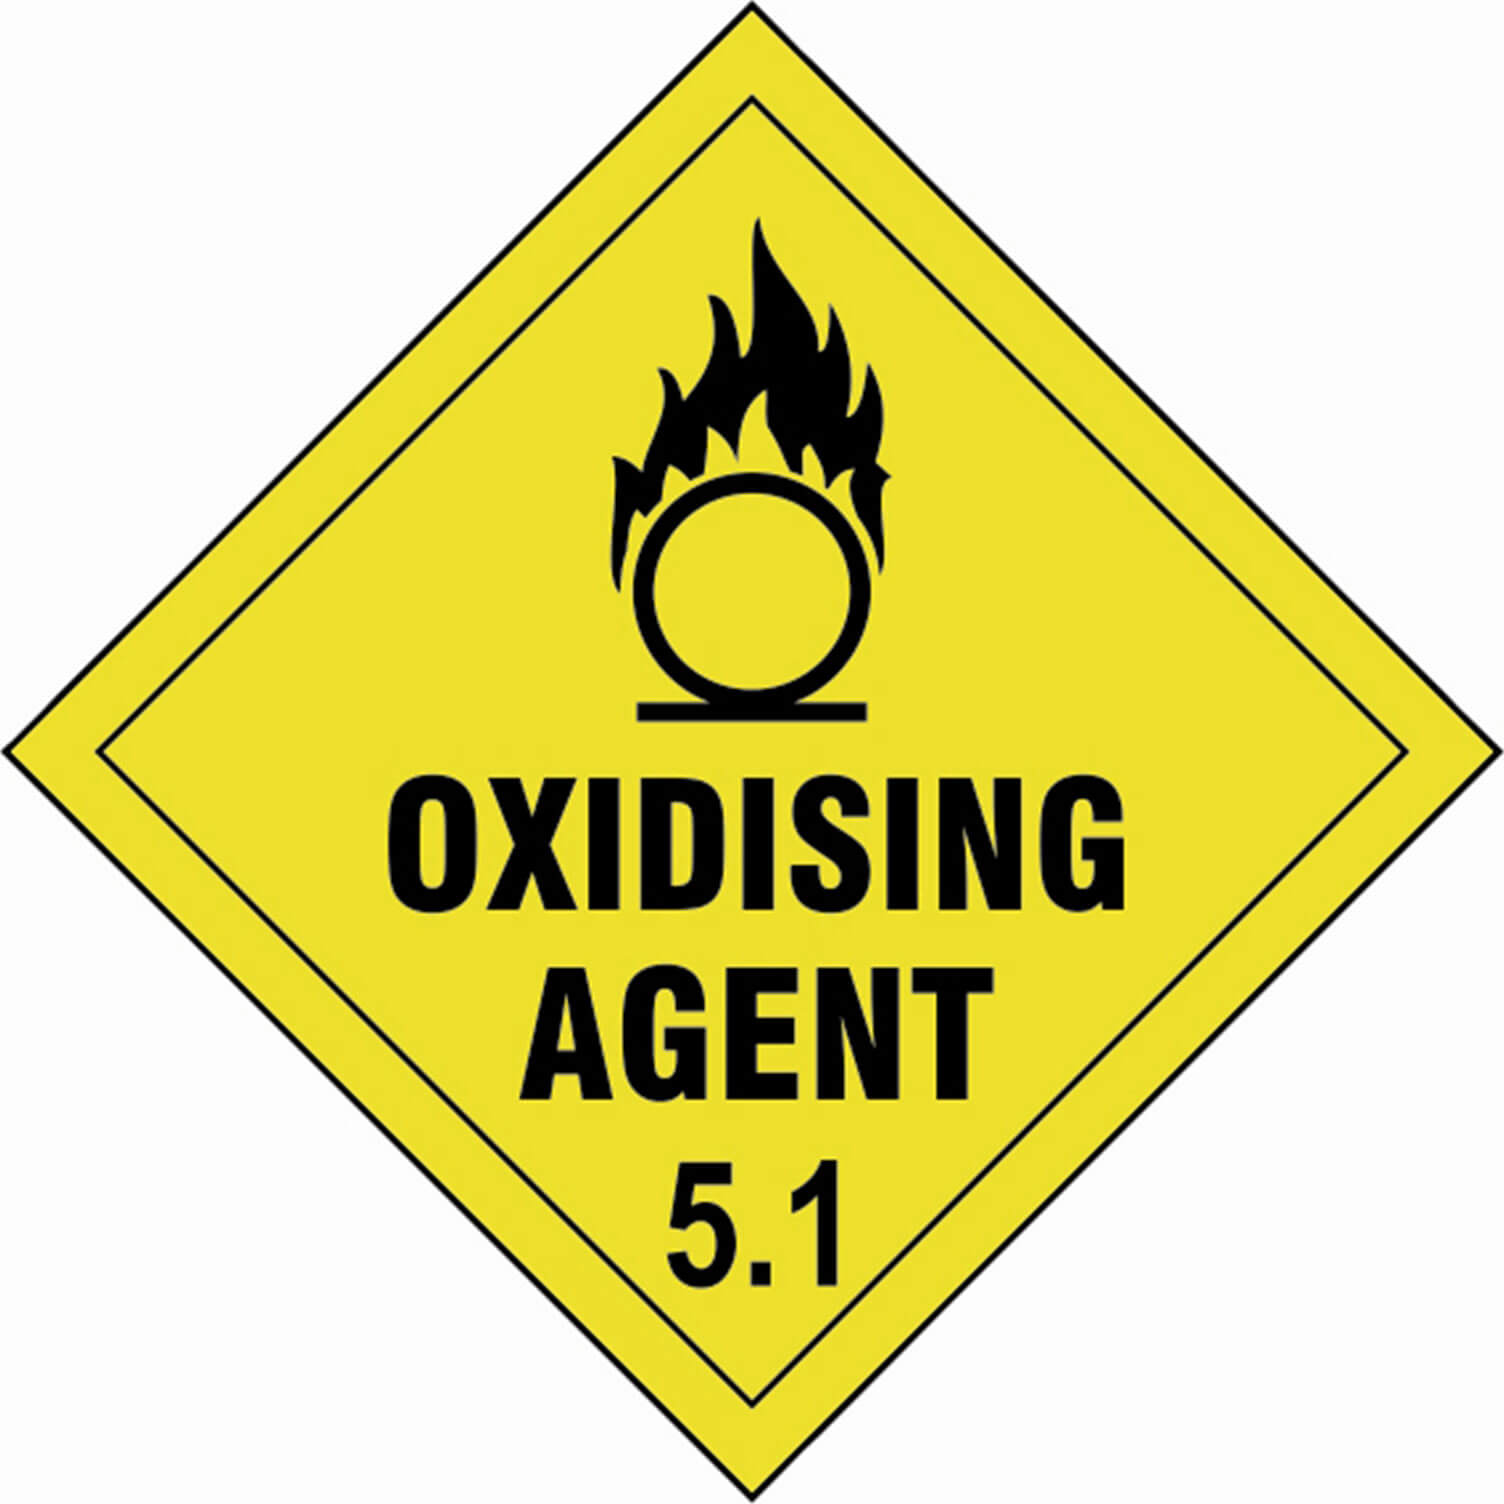 Tooled Up/Safety & Workwear/Safety/Scan 100 x 100mm SAV Diamond Sign - Oxidising Agent 5.1